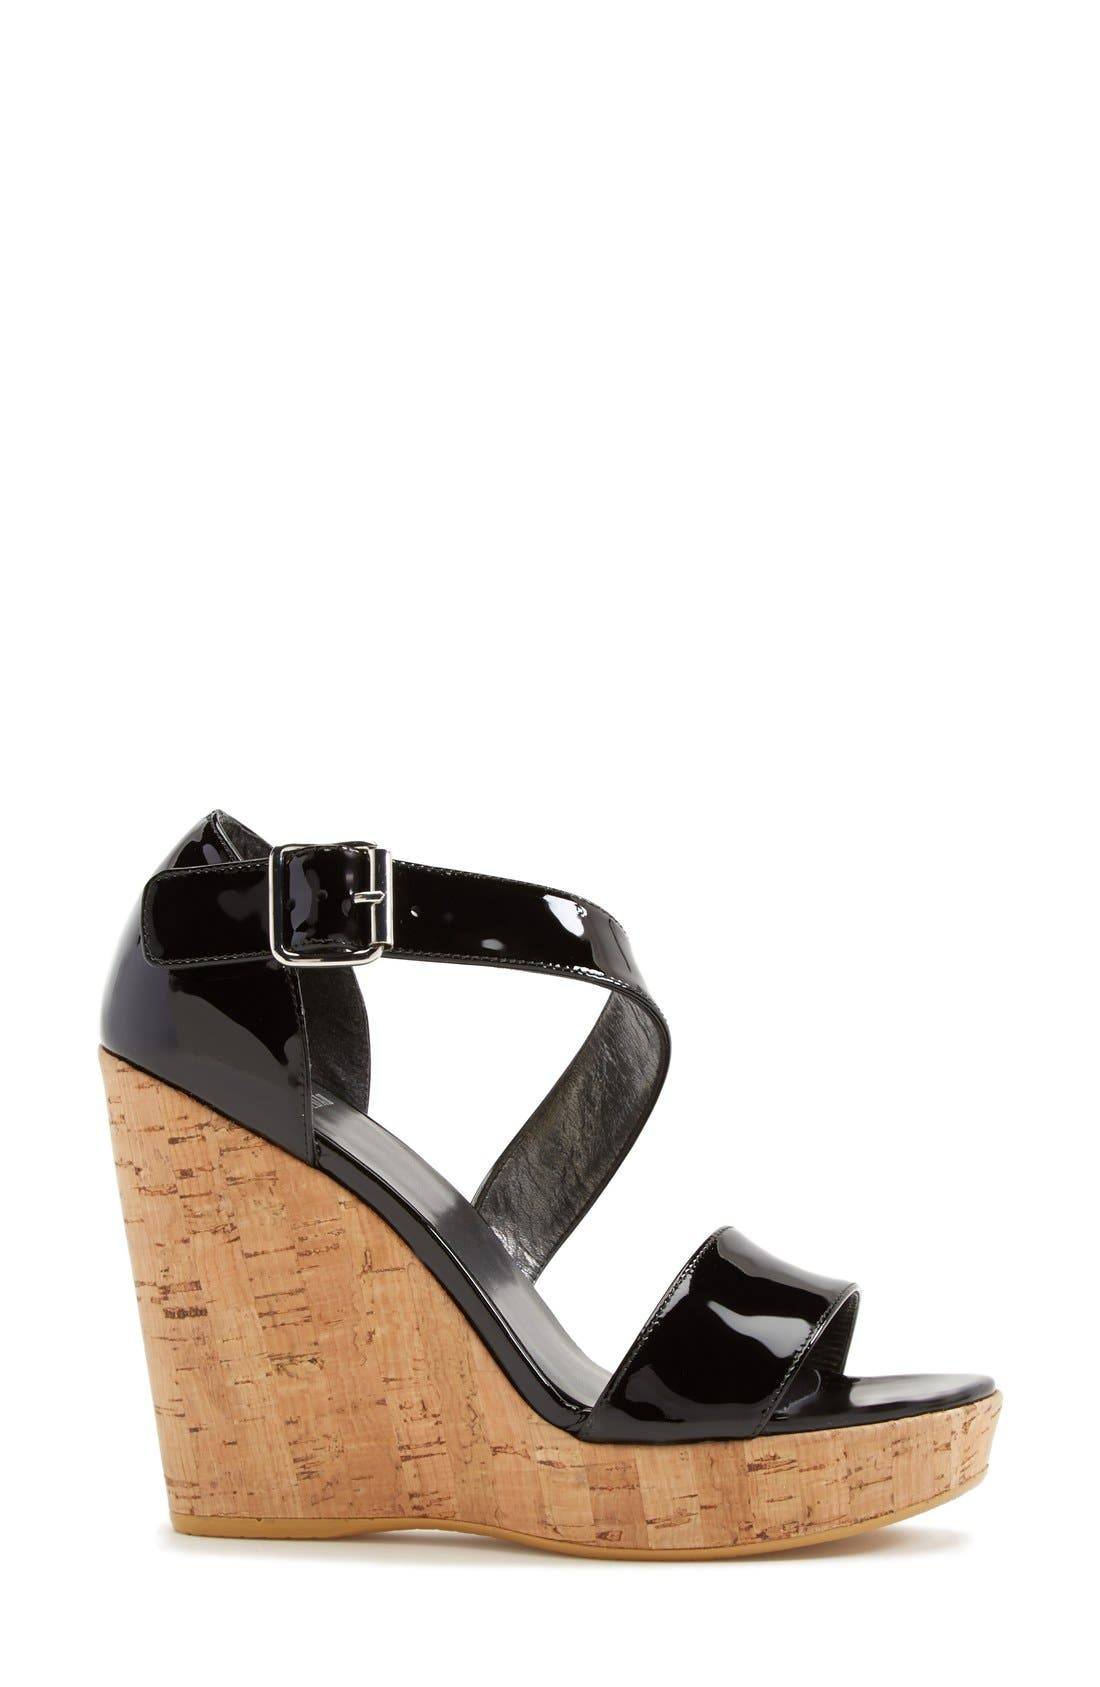 STUART WEITZMAN, 'Oneliner' Patent Leather Wedge Sandal, Alternate thumbnail 3, color, 001